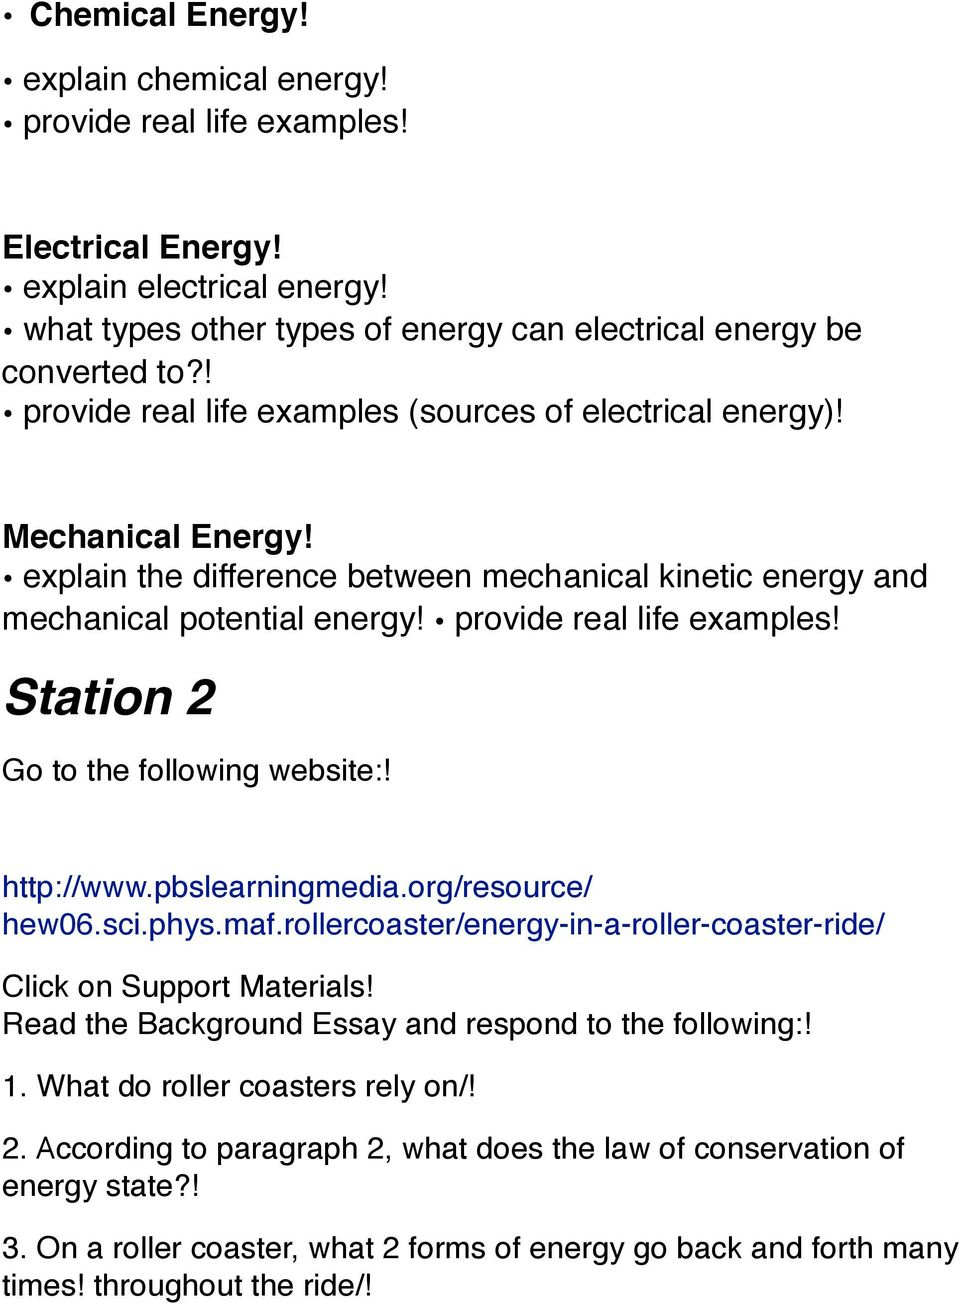 http://www.pbslearningmedia.org/resource/ hew06.sci.phys.maf.rollercoaster/energy-in-a-roller-coaster-ride/ Click on Support Materials! Read the Background Essay and respond to the following:! 1.